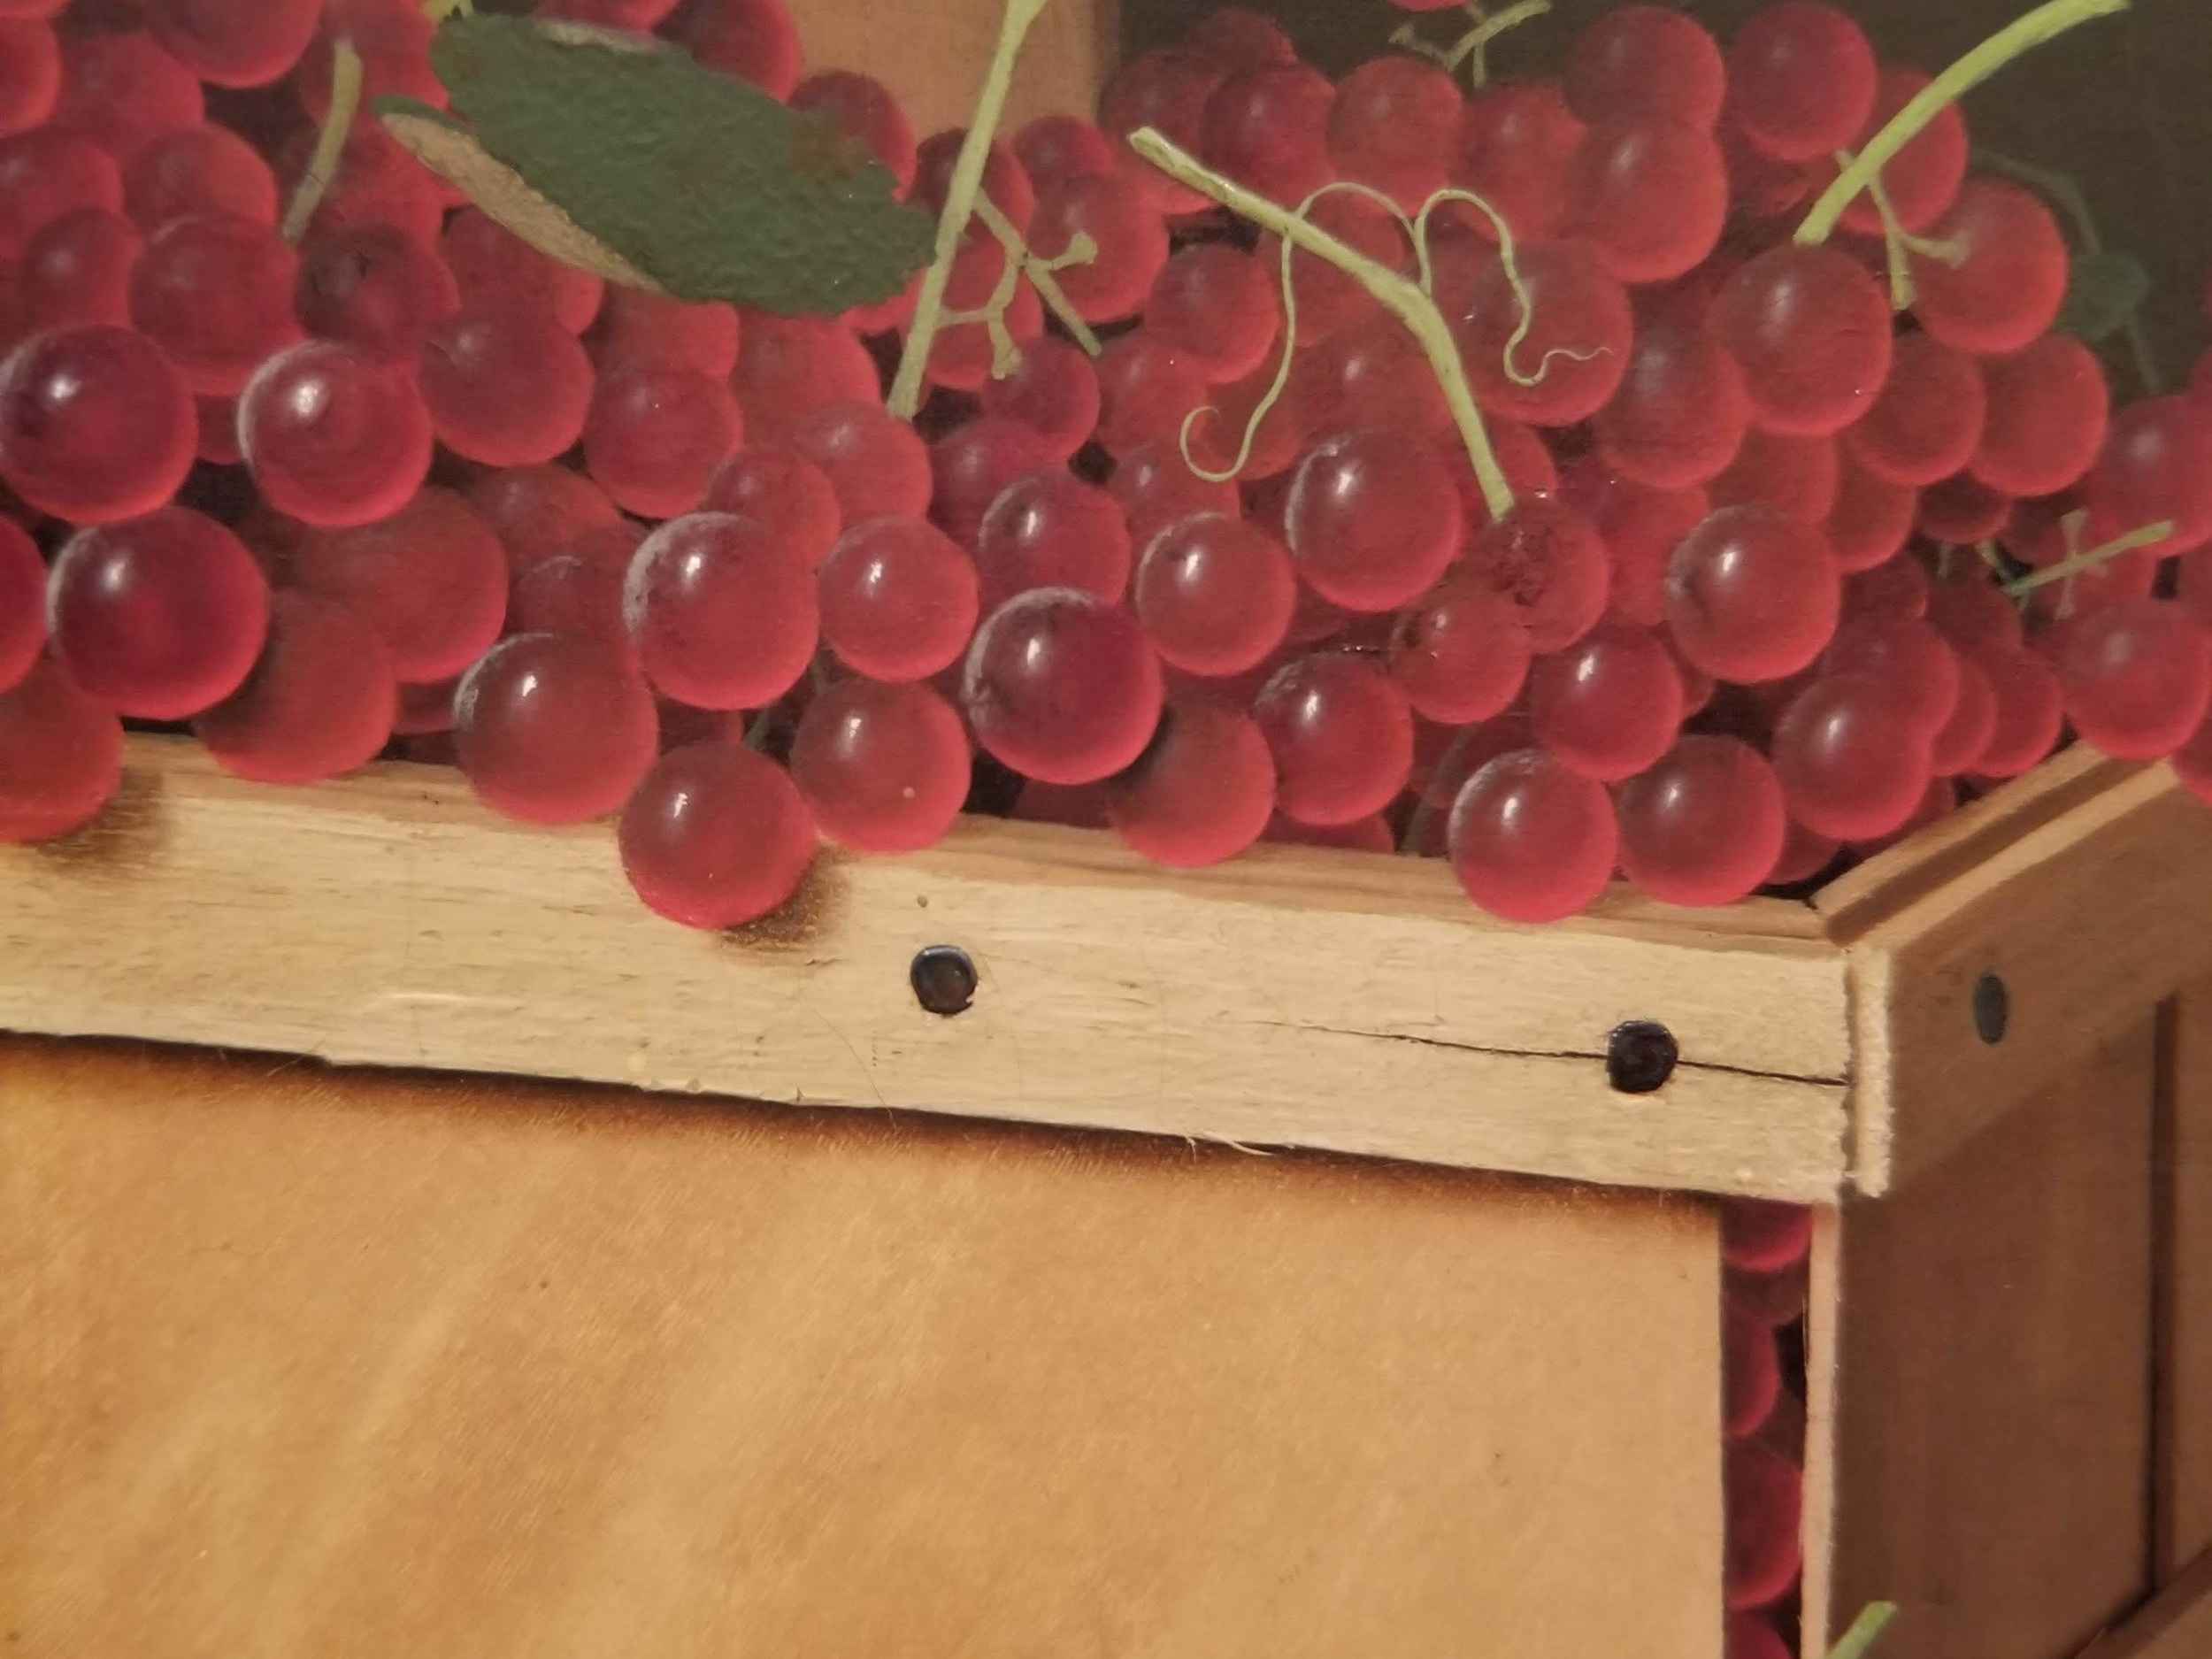 THESE PERFECT GRAPES. THIS LIFELIKE WOOD BOX. That's a painting!!!